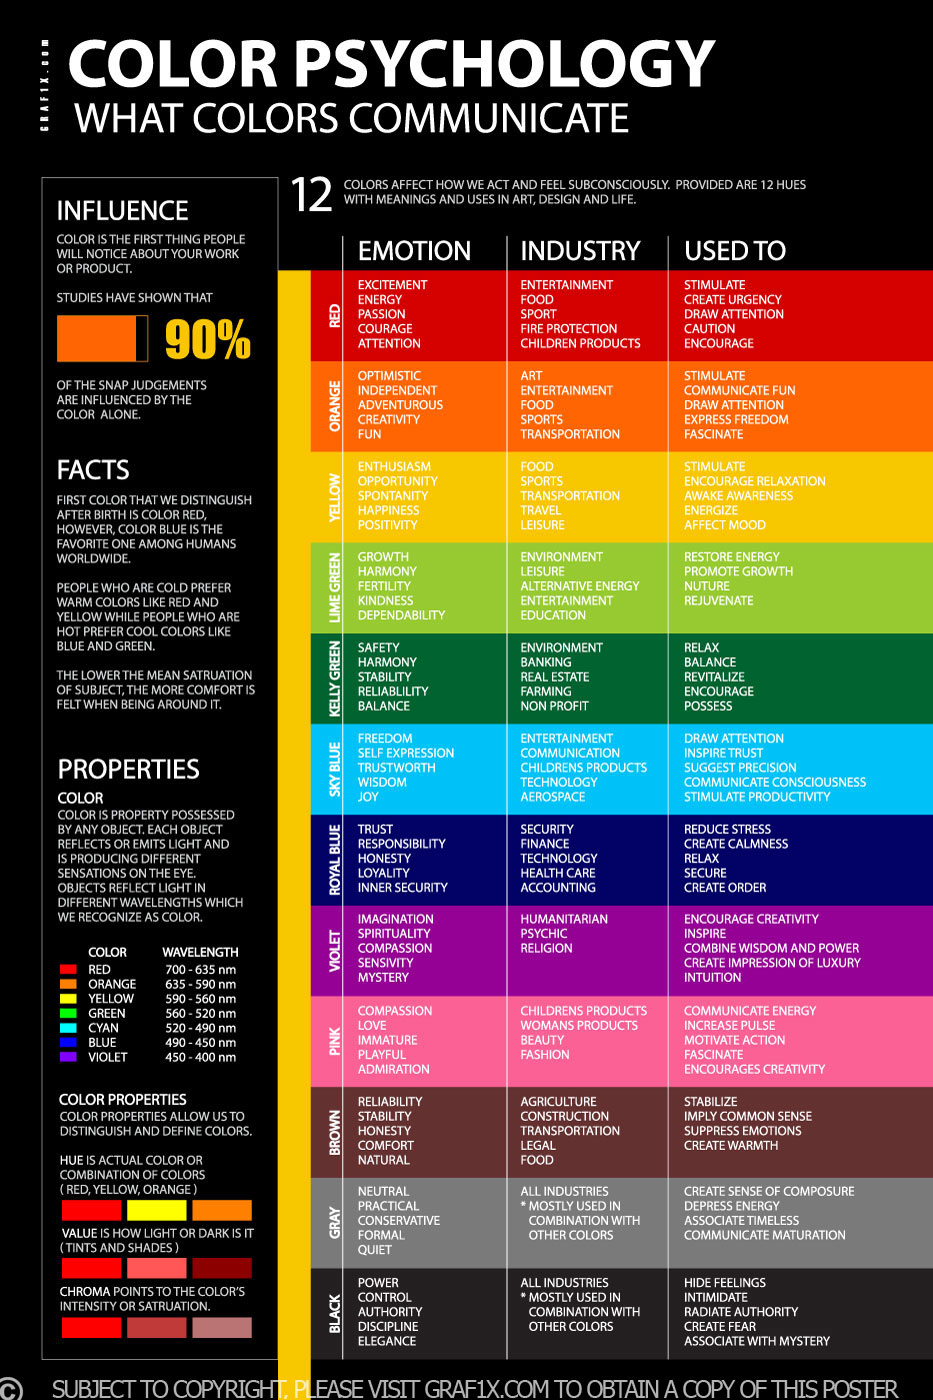 color-psychology-meaning-emotion-poster cff5f4c82